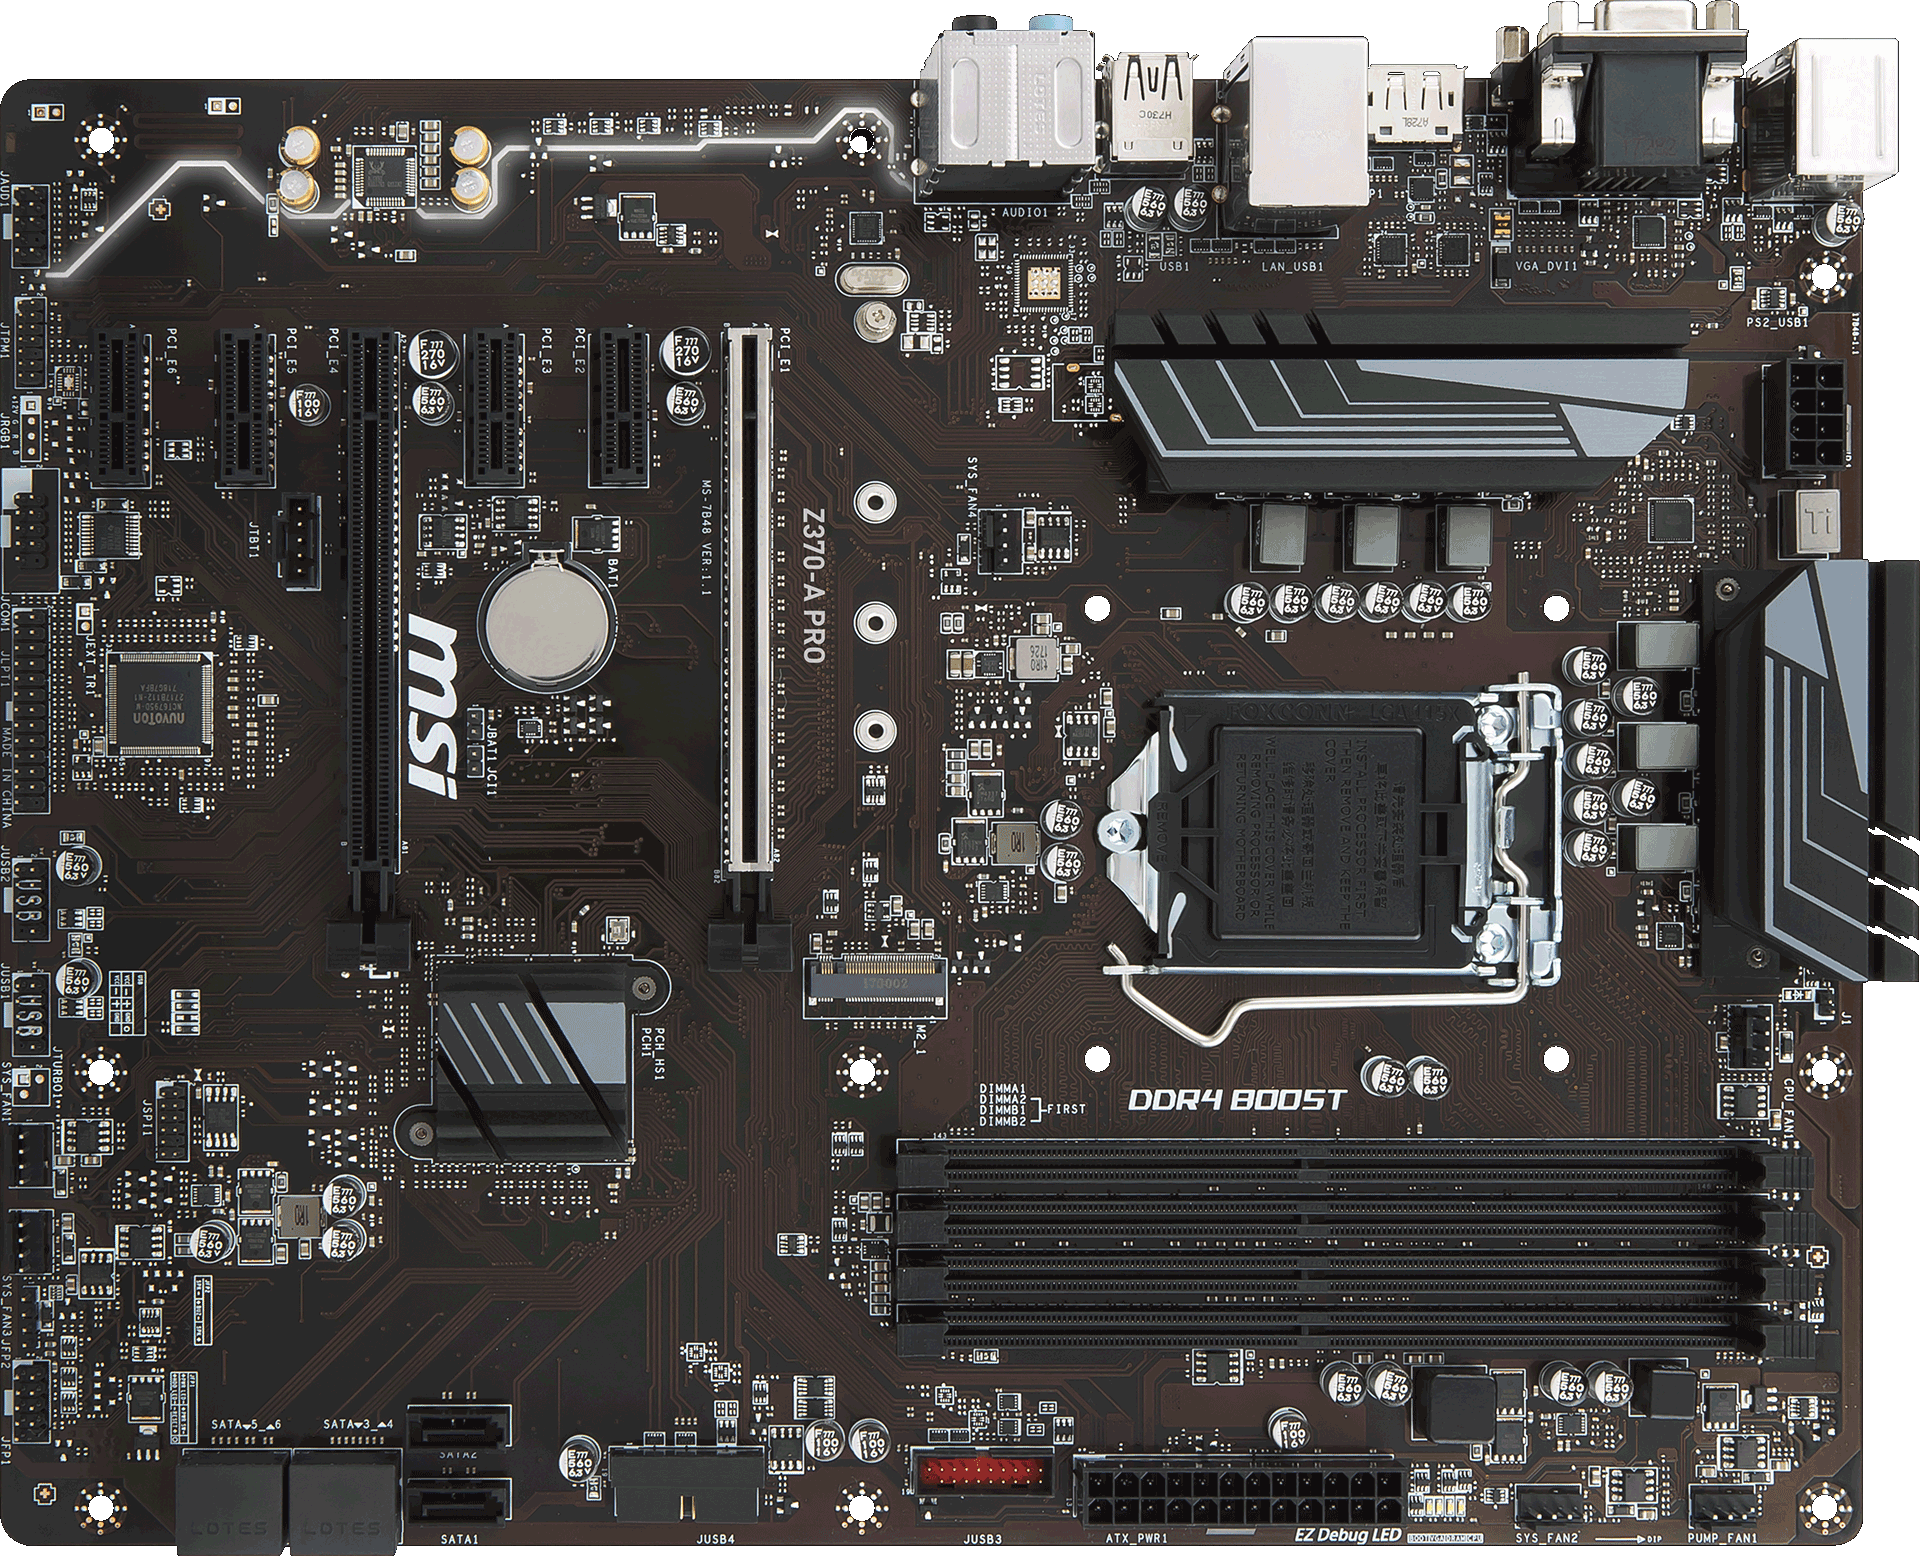 Z370-A PRO | Motherboard - The world leader in motherboard